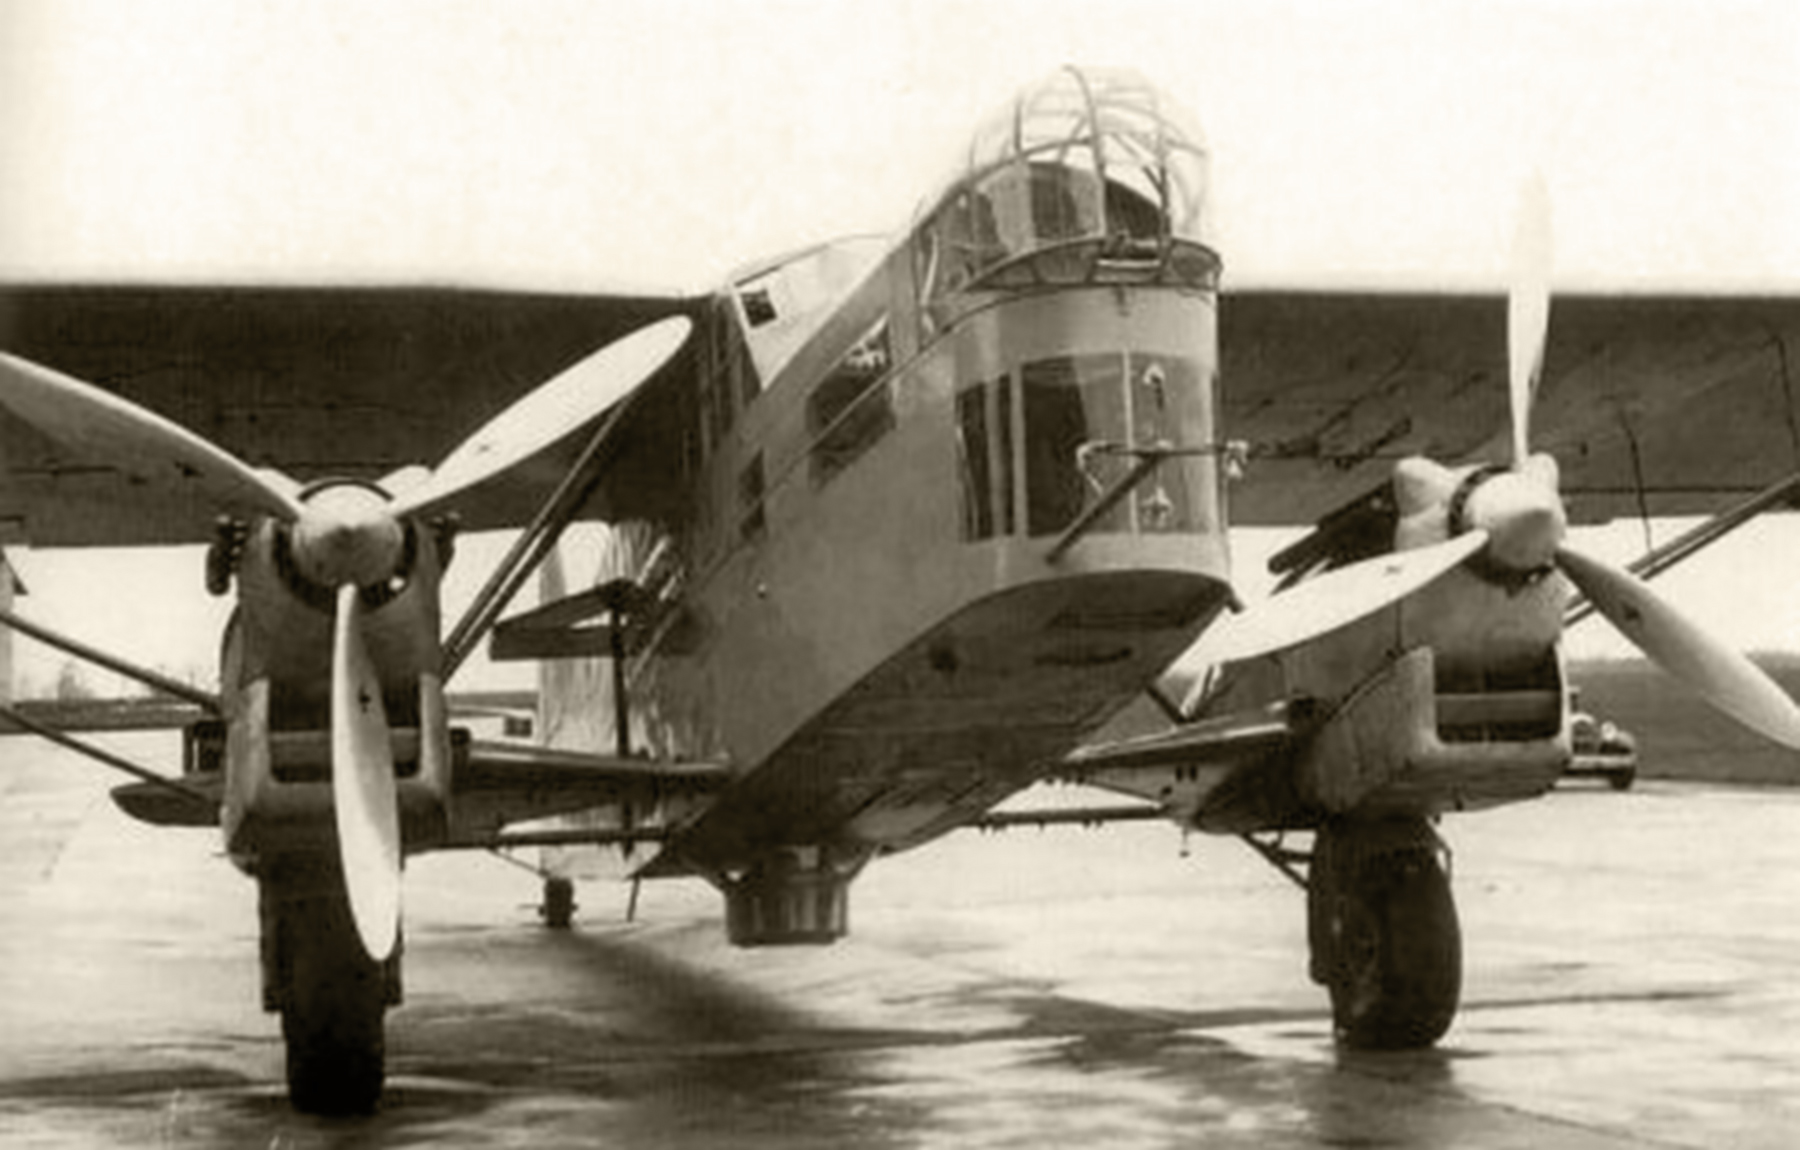 French Airforce Potez 540 at a dispersal area France ebay 01